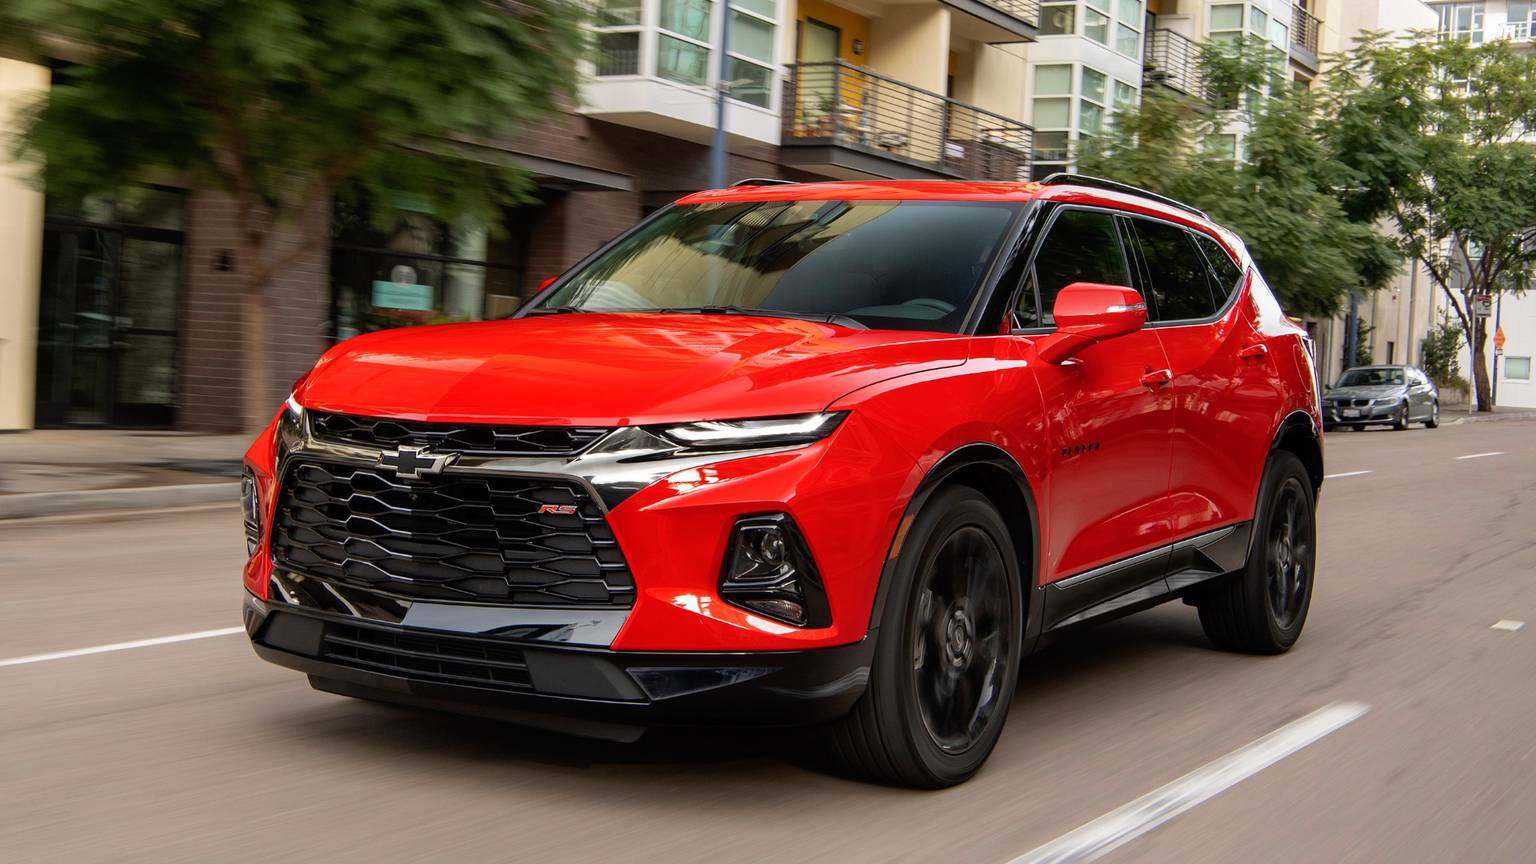 Review: The Chevy Blazer Is Back As A Midsize Crossover